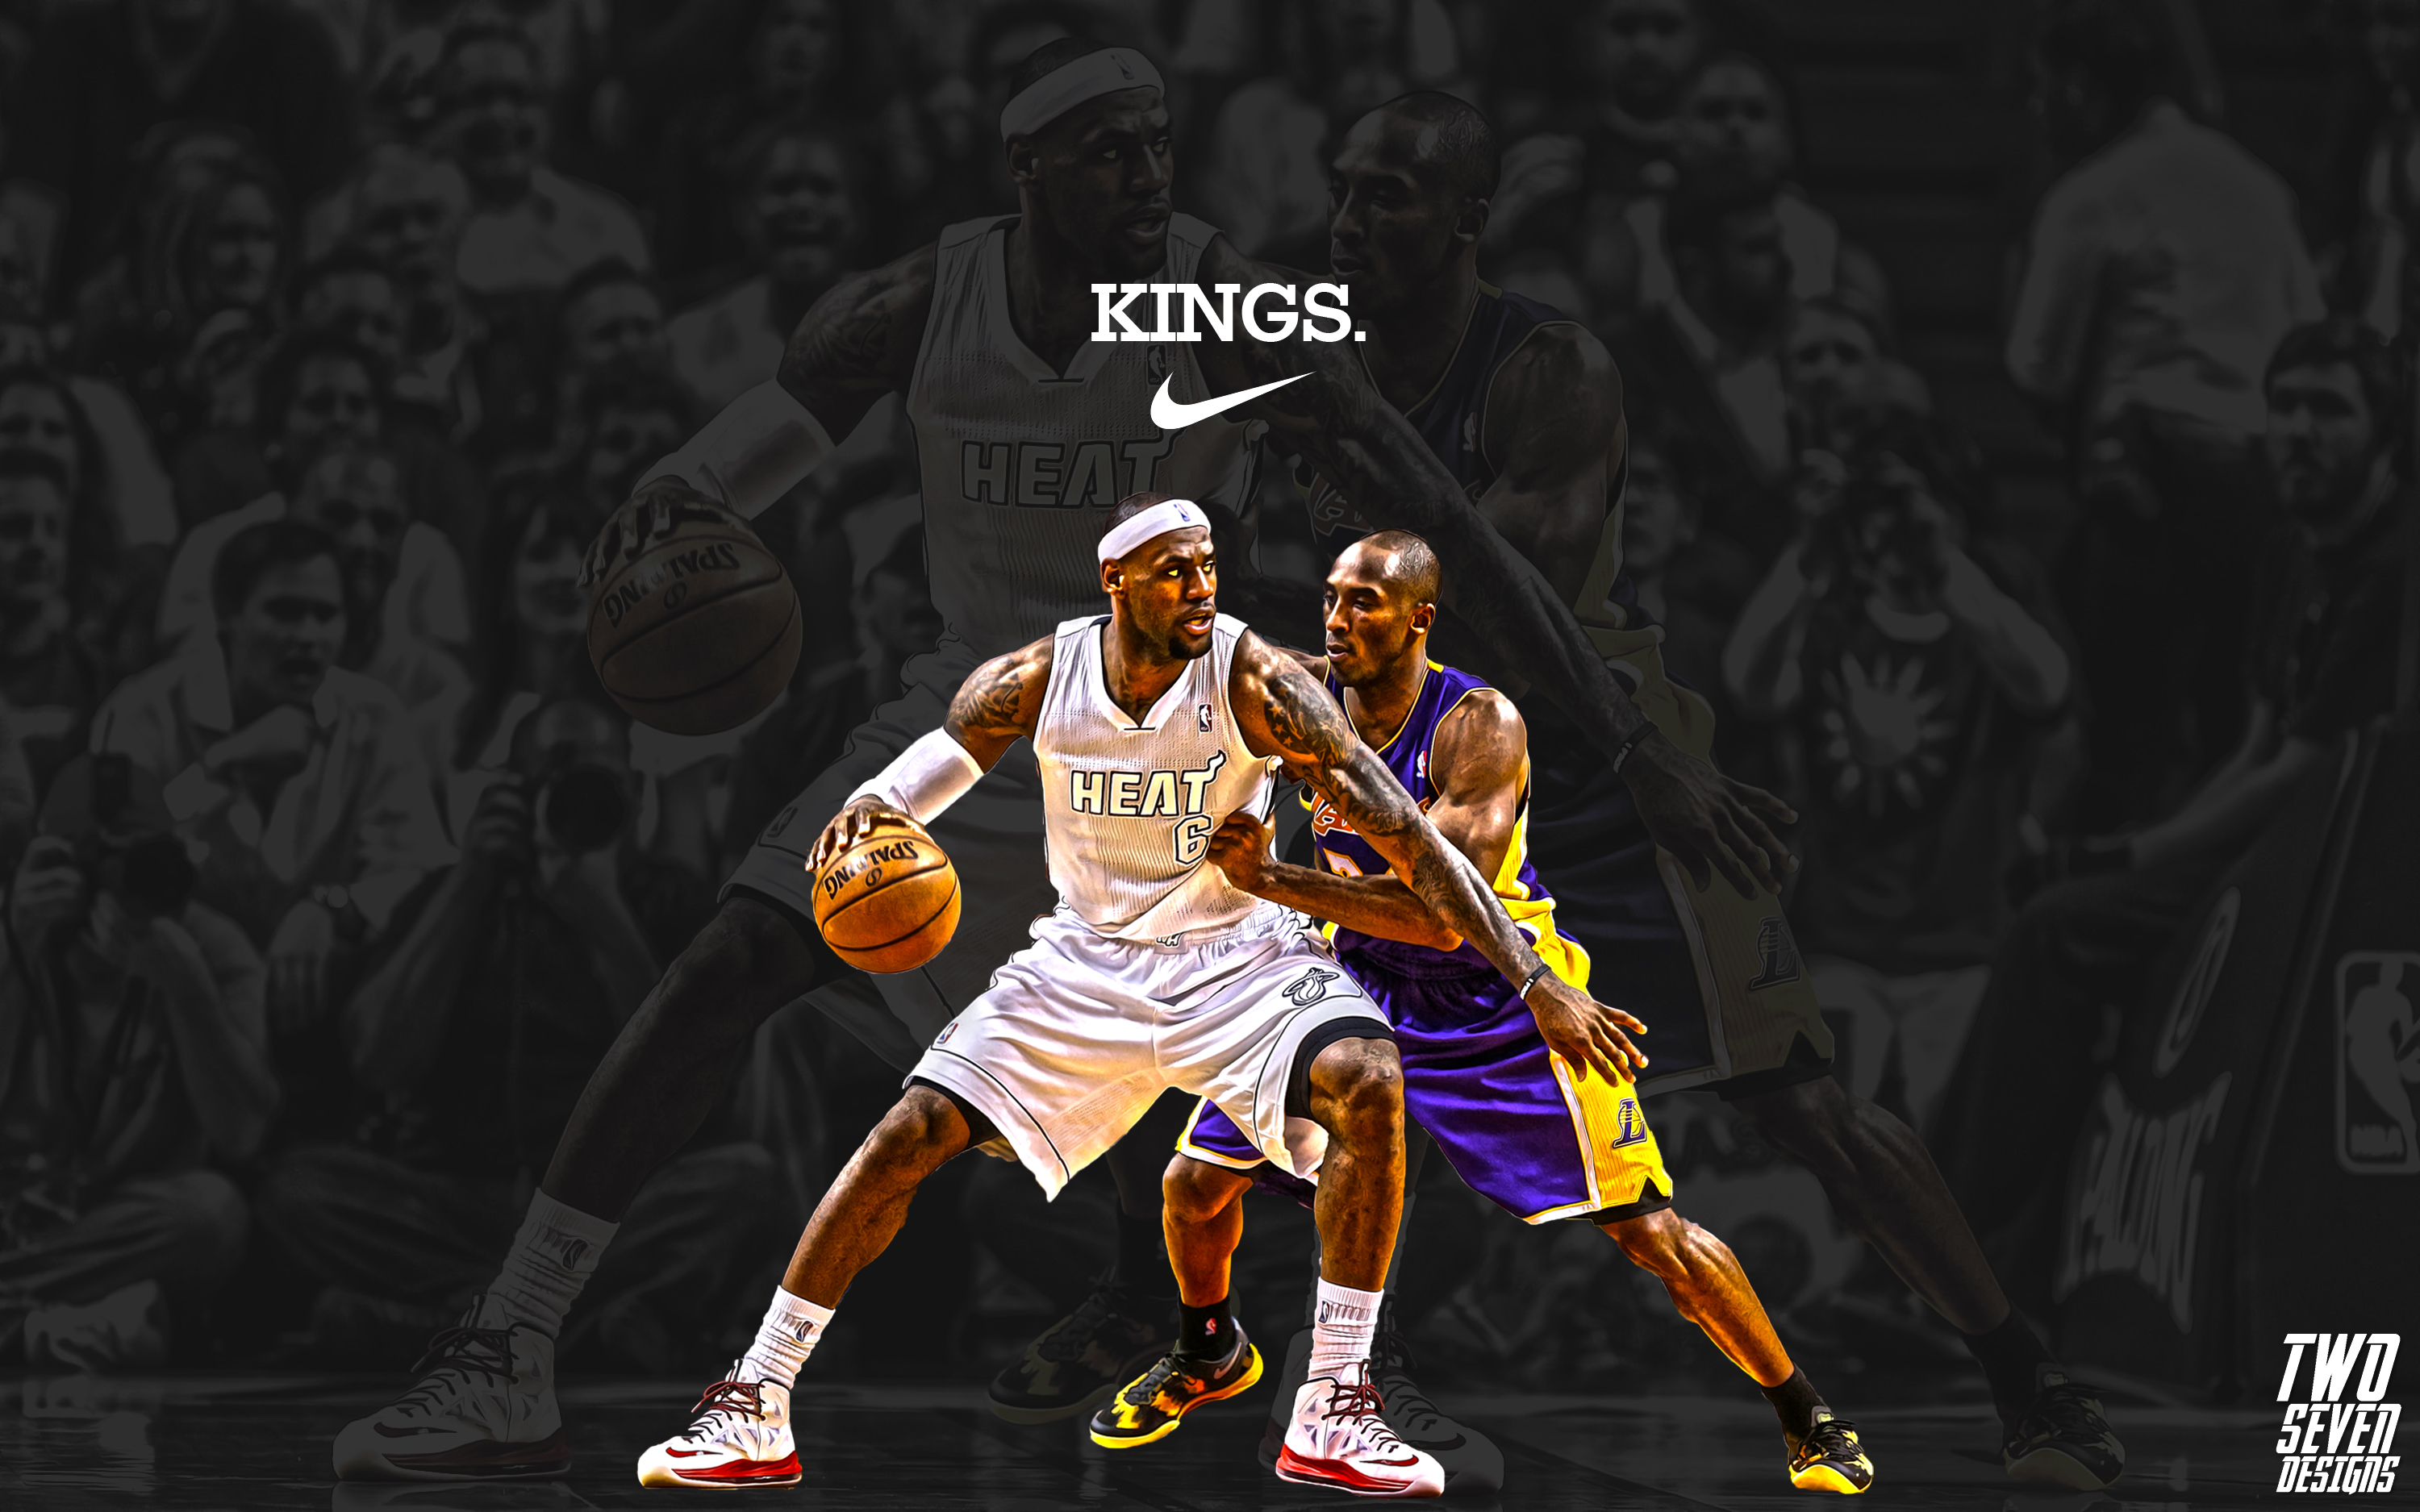 Download Lebron James And Kobe Bryant Wallpaper Gallery